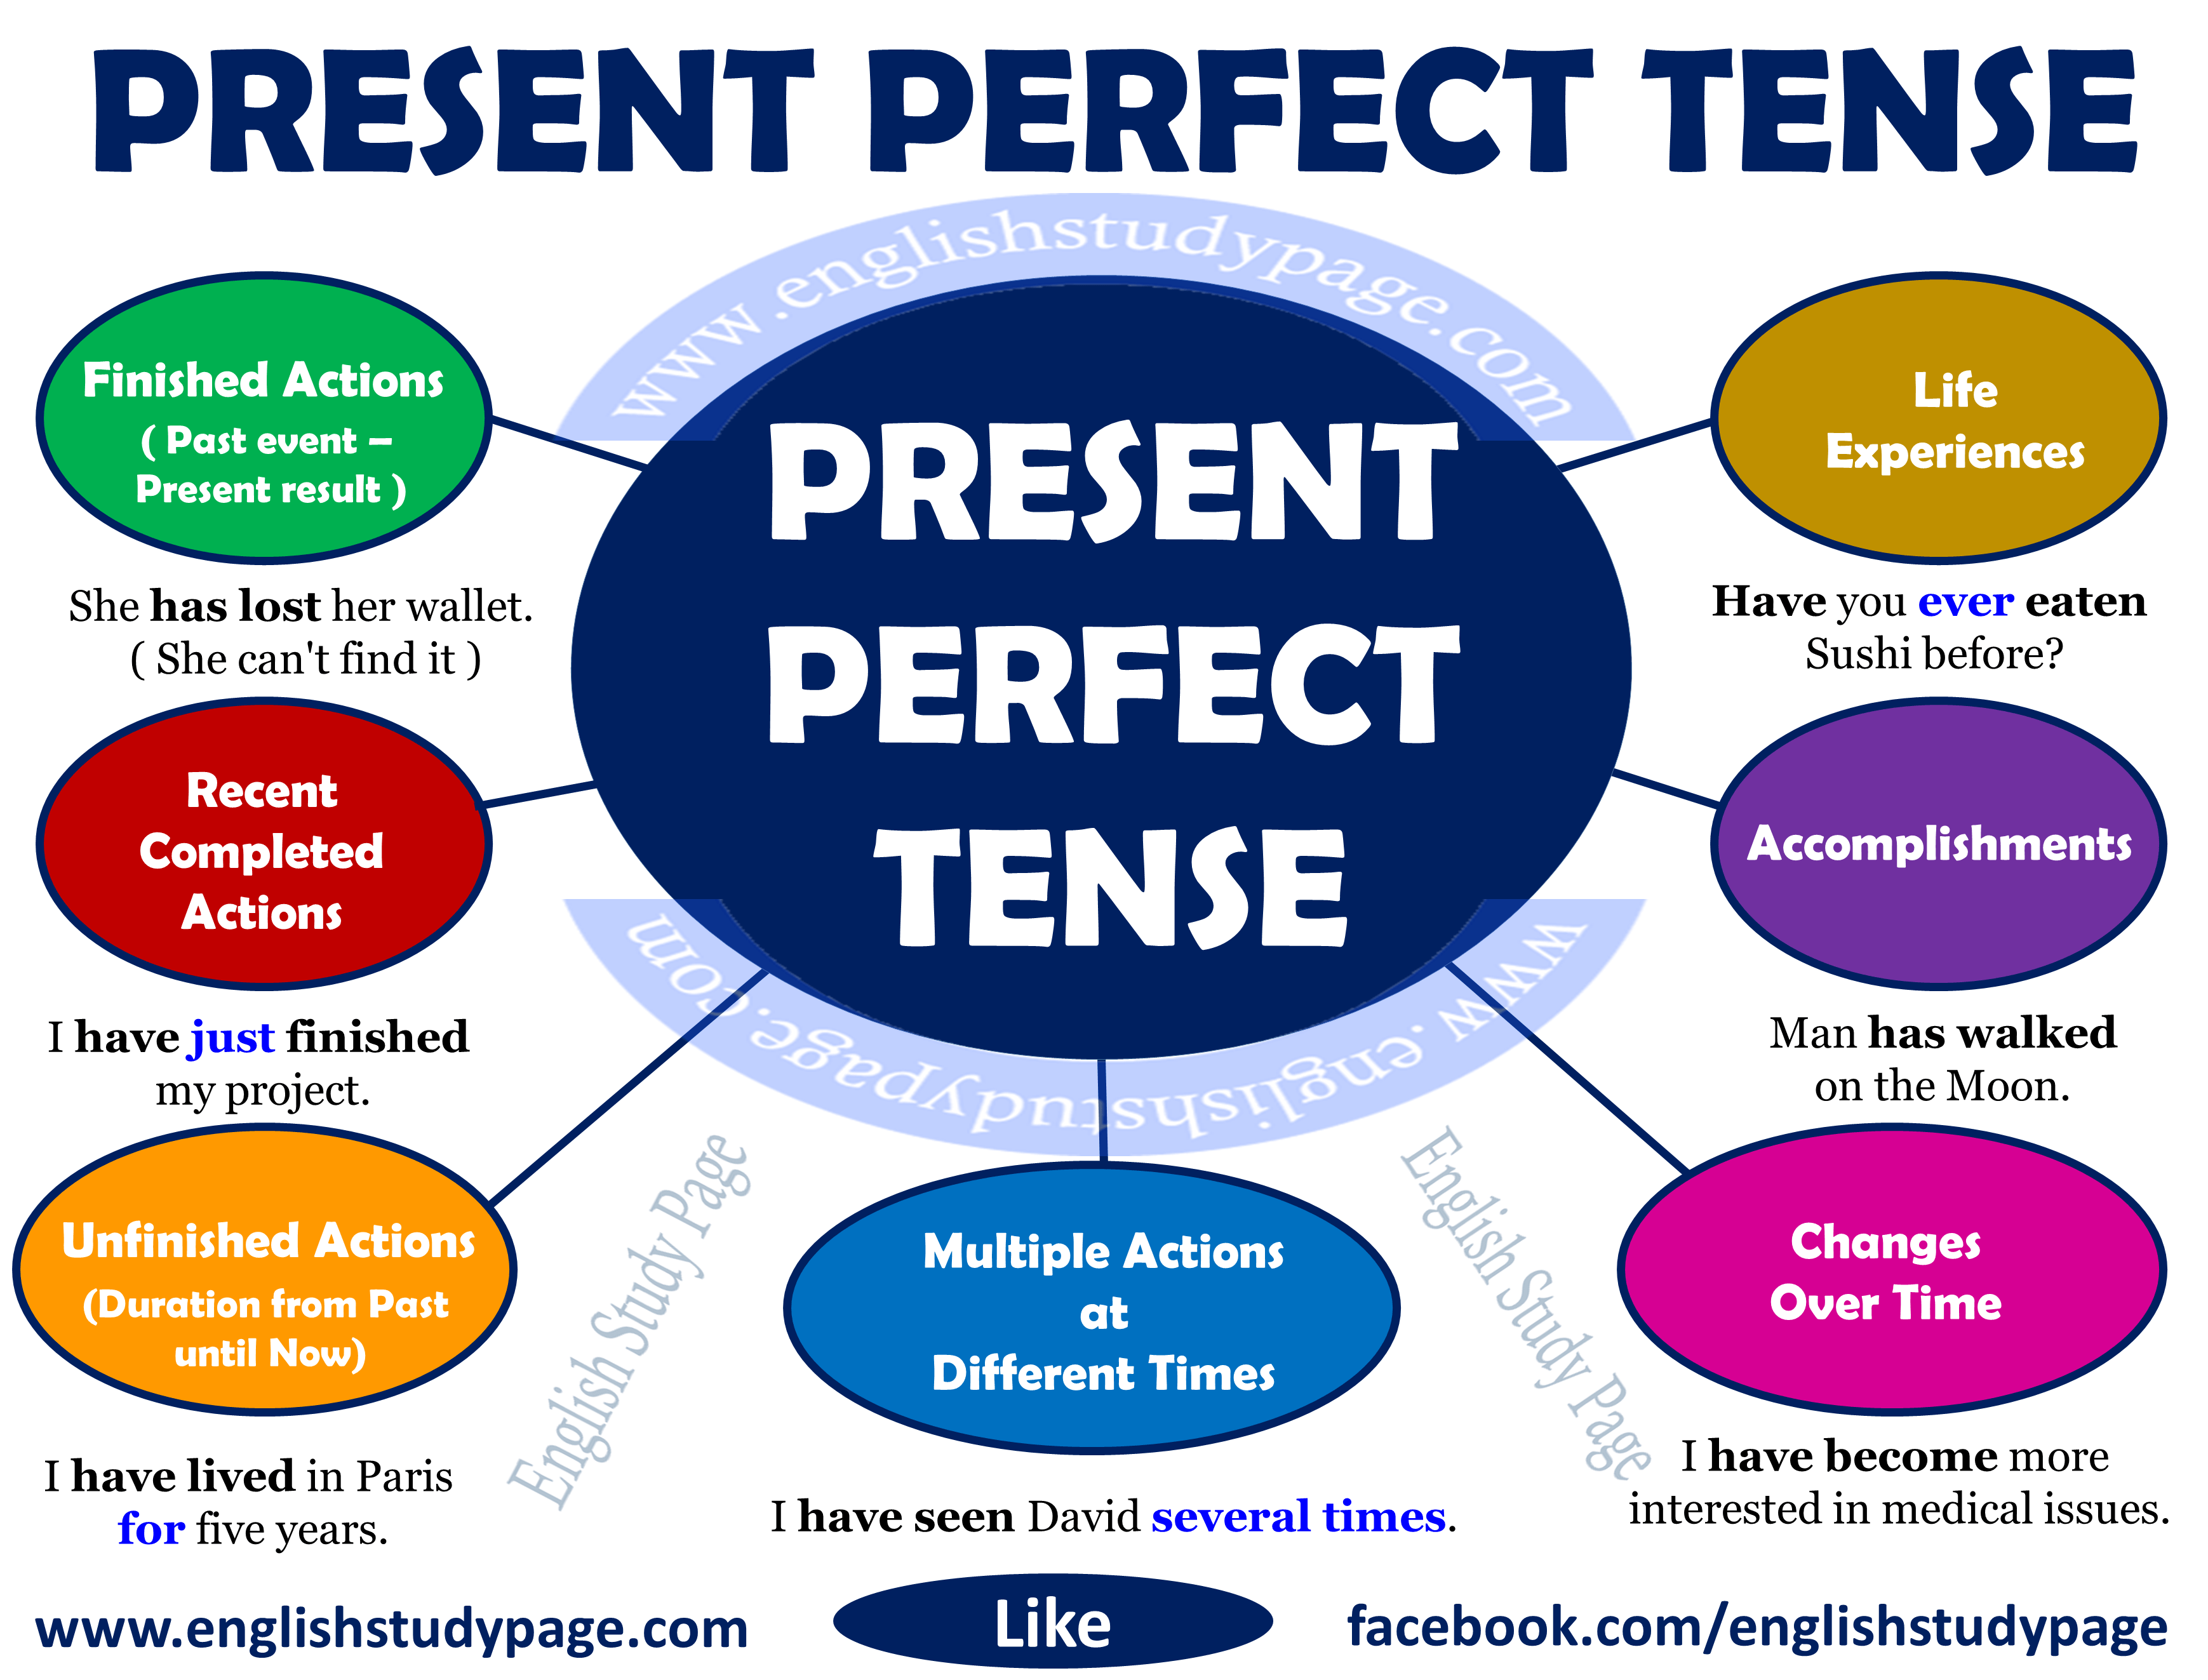 present-perfect-tense.png